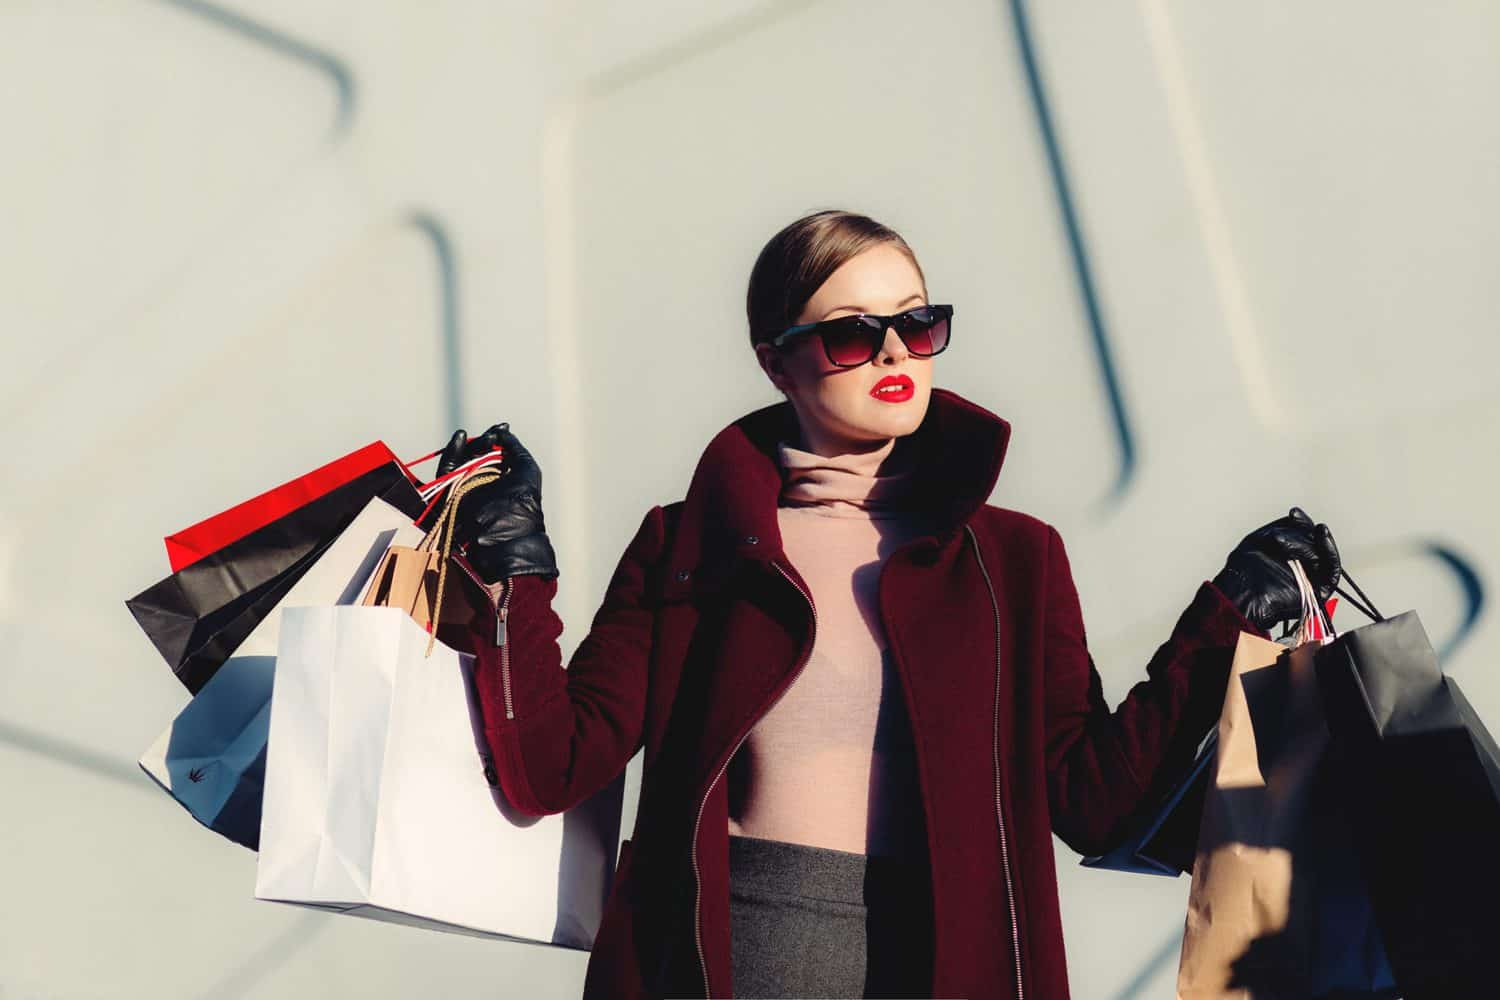 Improve The Retail Experience With A Well-Developed Mobile App